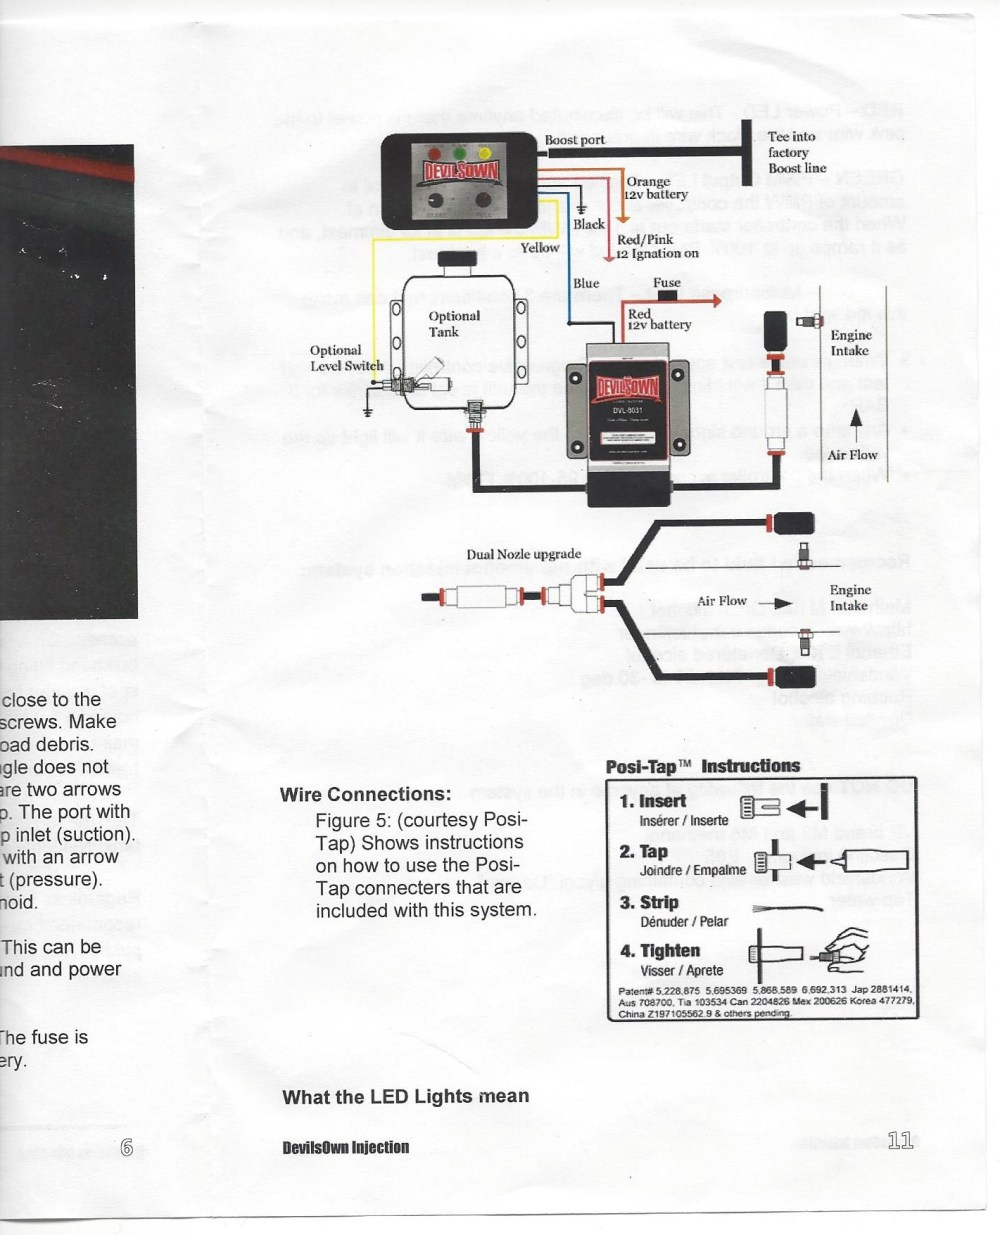 medium resolution of aem failsafe water meth need help to wire up to hondata s300v2